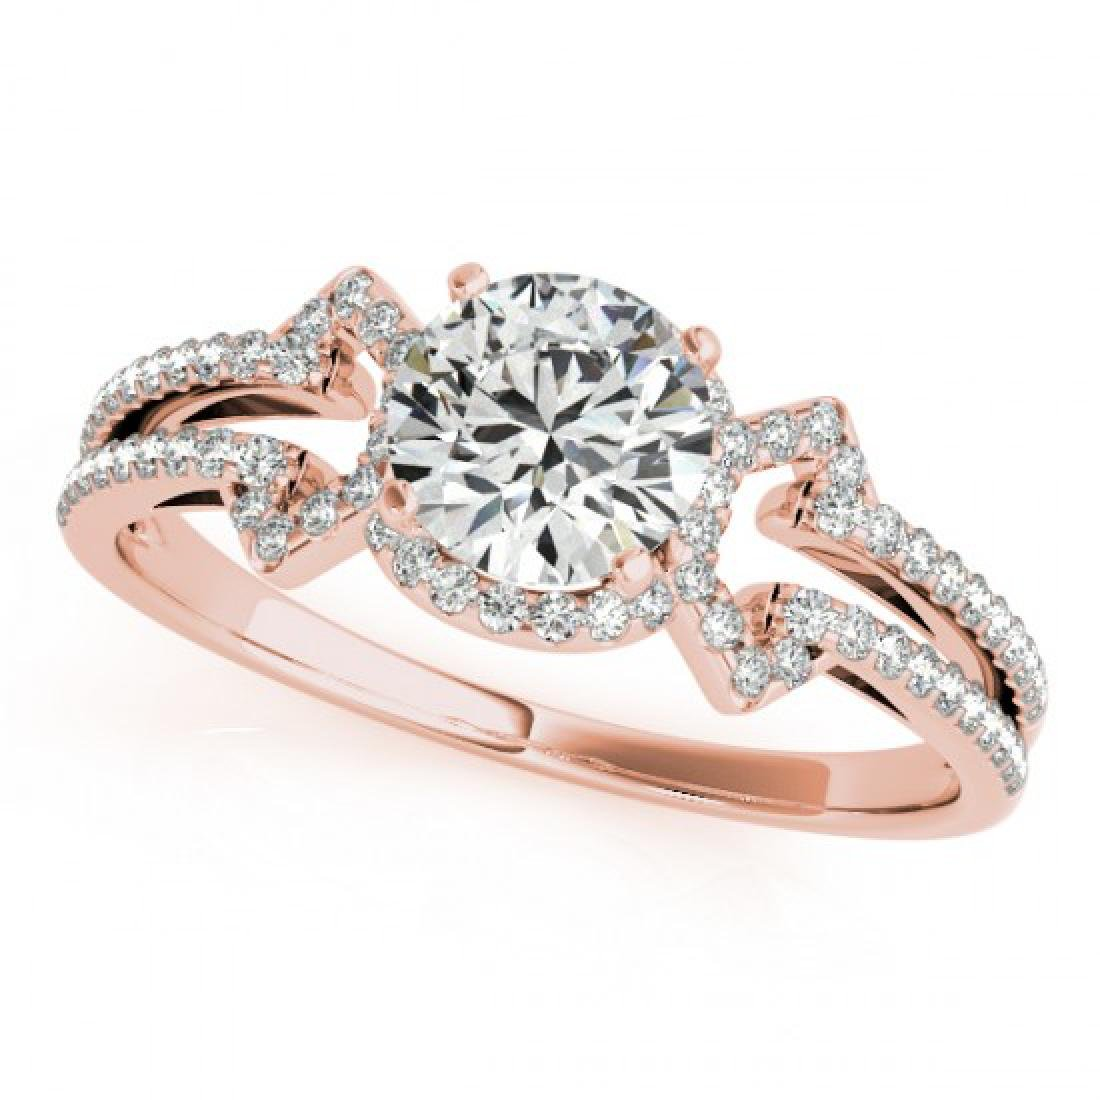 0.9 CTW Certified VS/SI Diamond Solitaire Ring 14K Rose